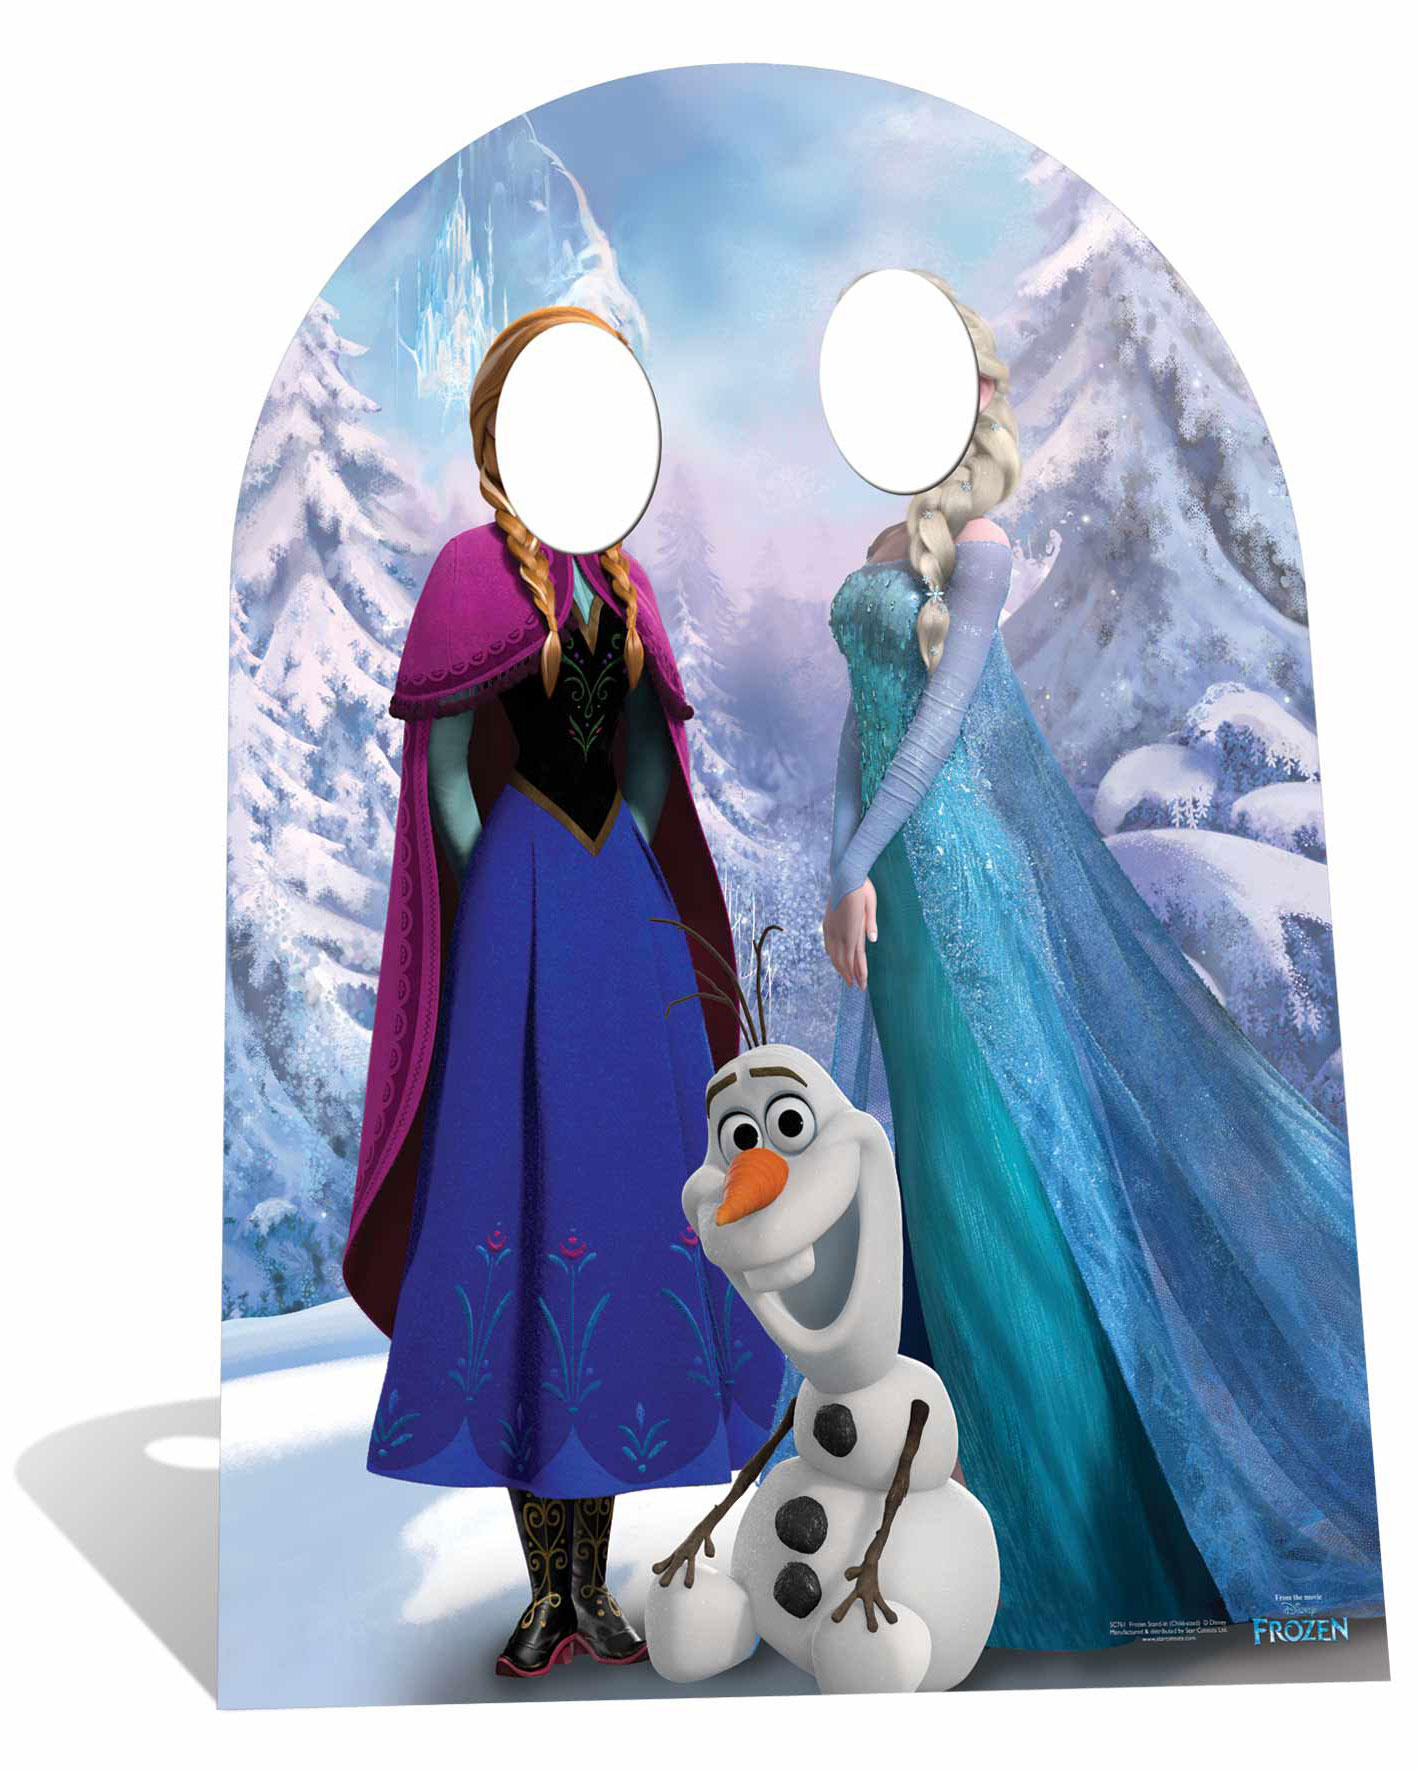 Cardboard cutouts have traditionally lined shop windows and the cinema ...